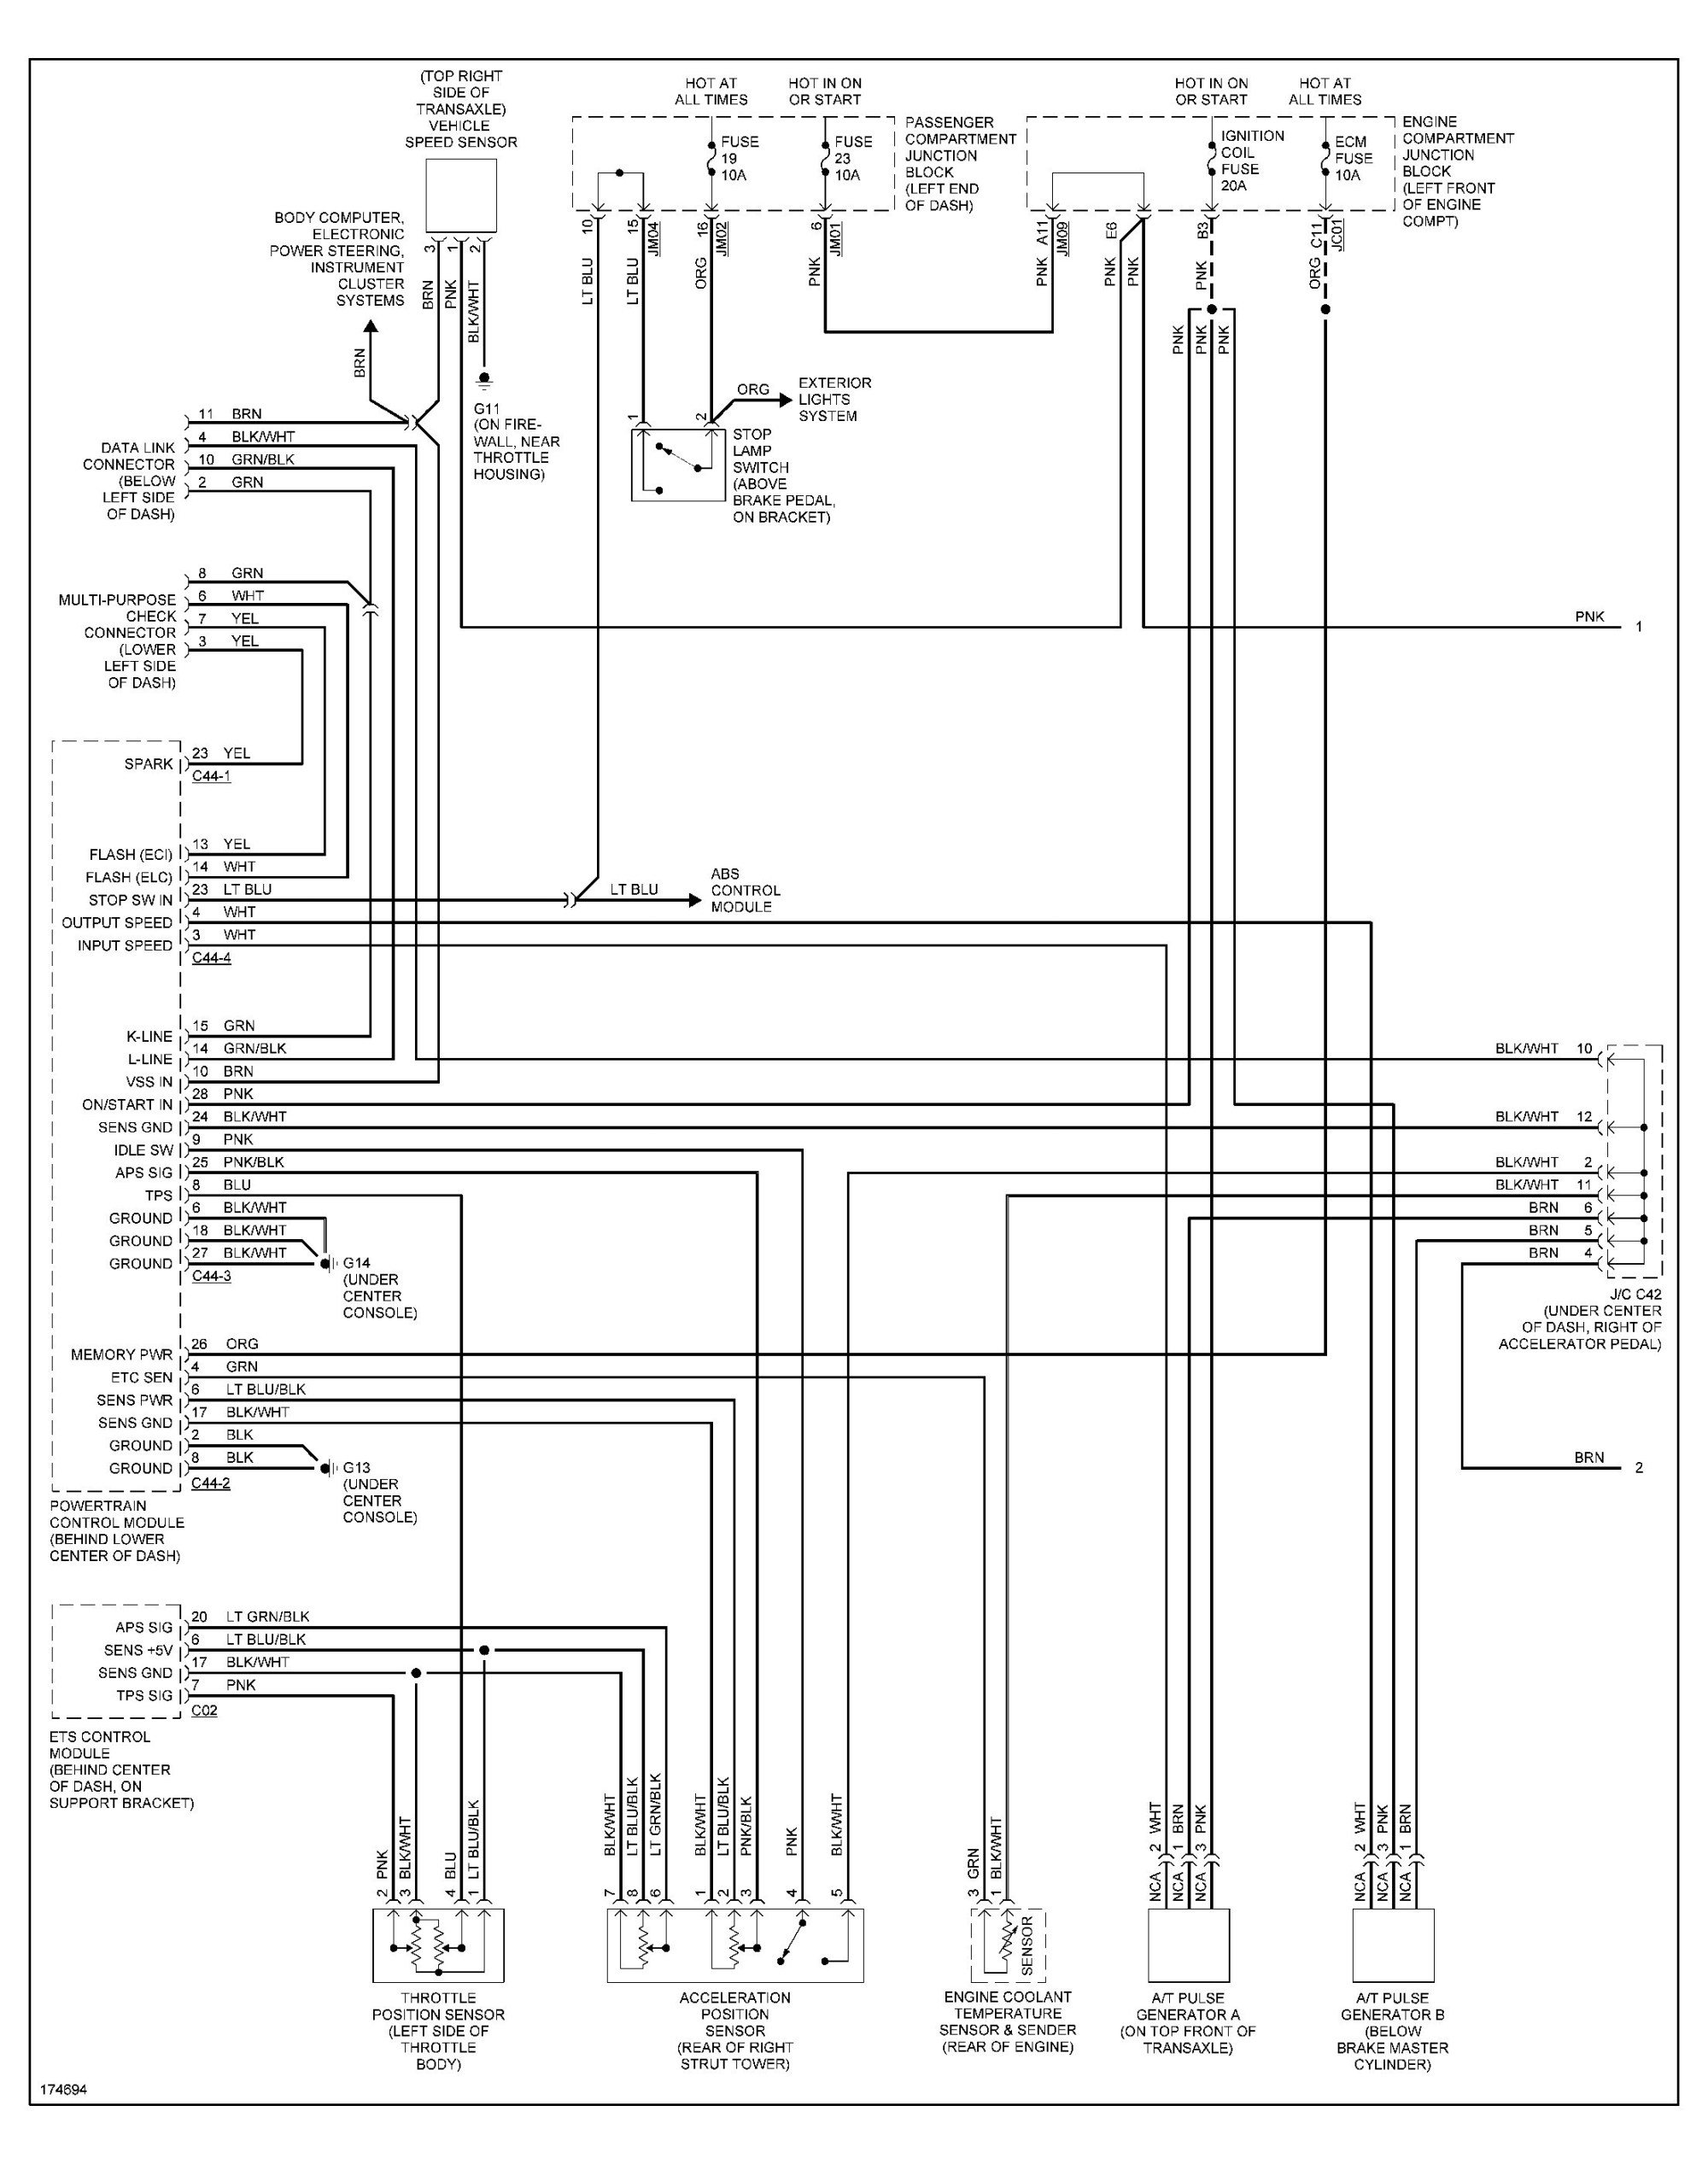 hight resolution of 2004 3 5l hyundai engine diagram data diagram schematic 2004 3 5l hyundai engine diagram